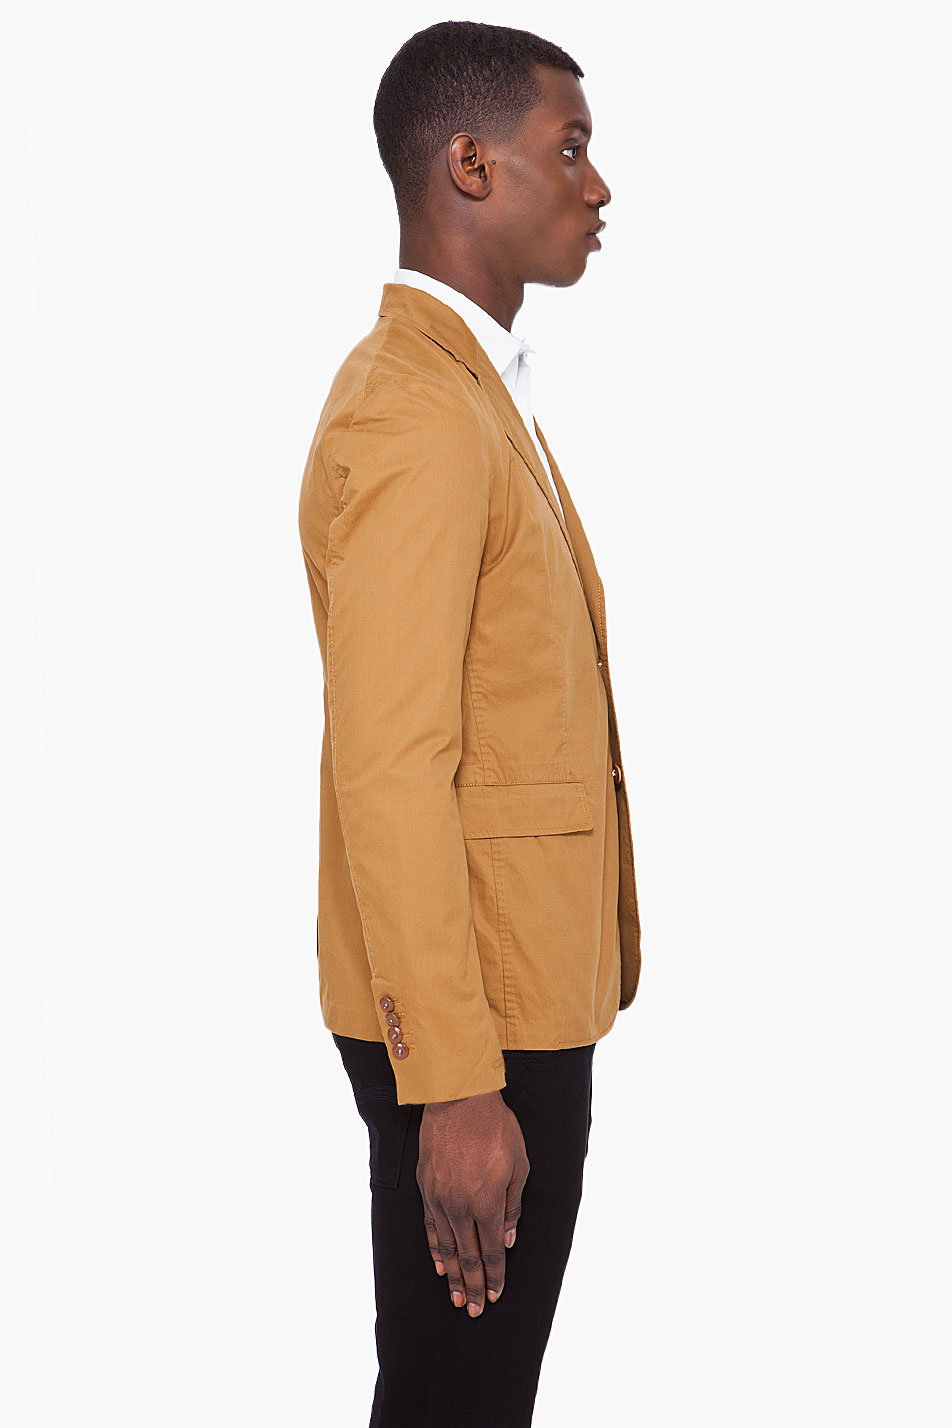 G-star raw Light Brown Blazer in Brown for Men | Lyst